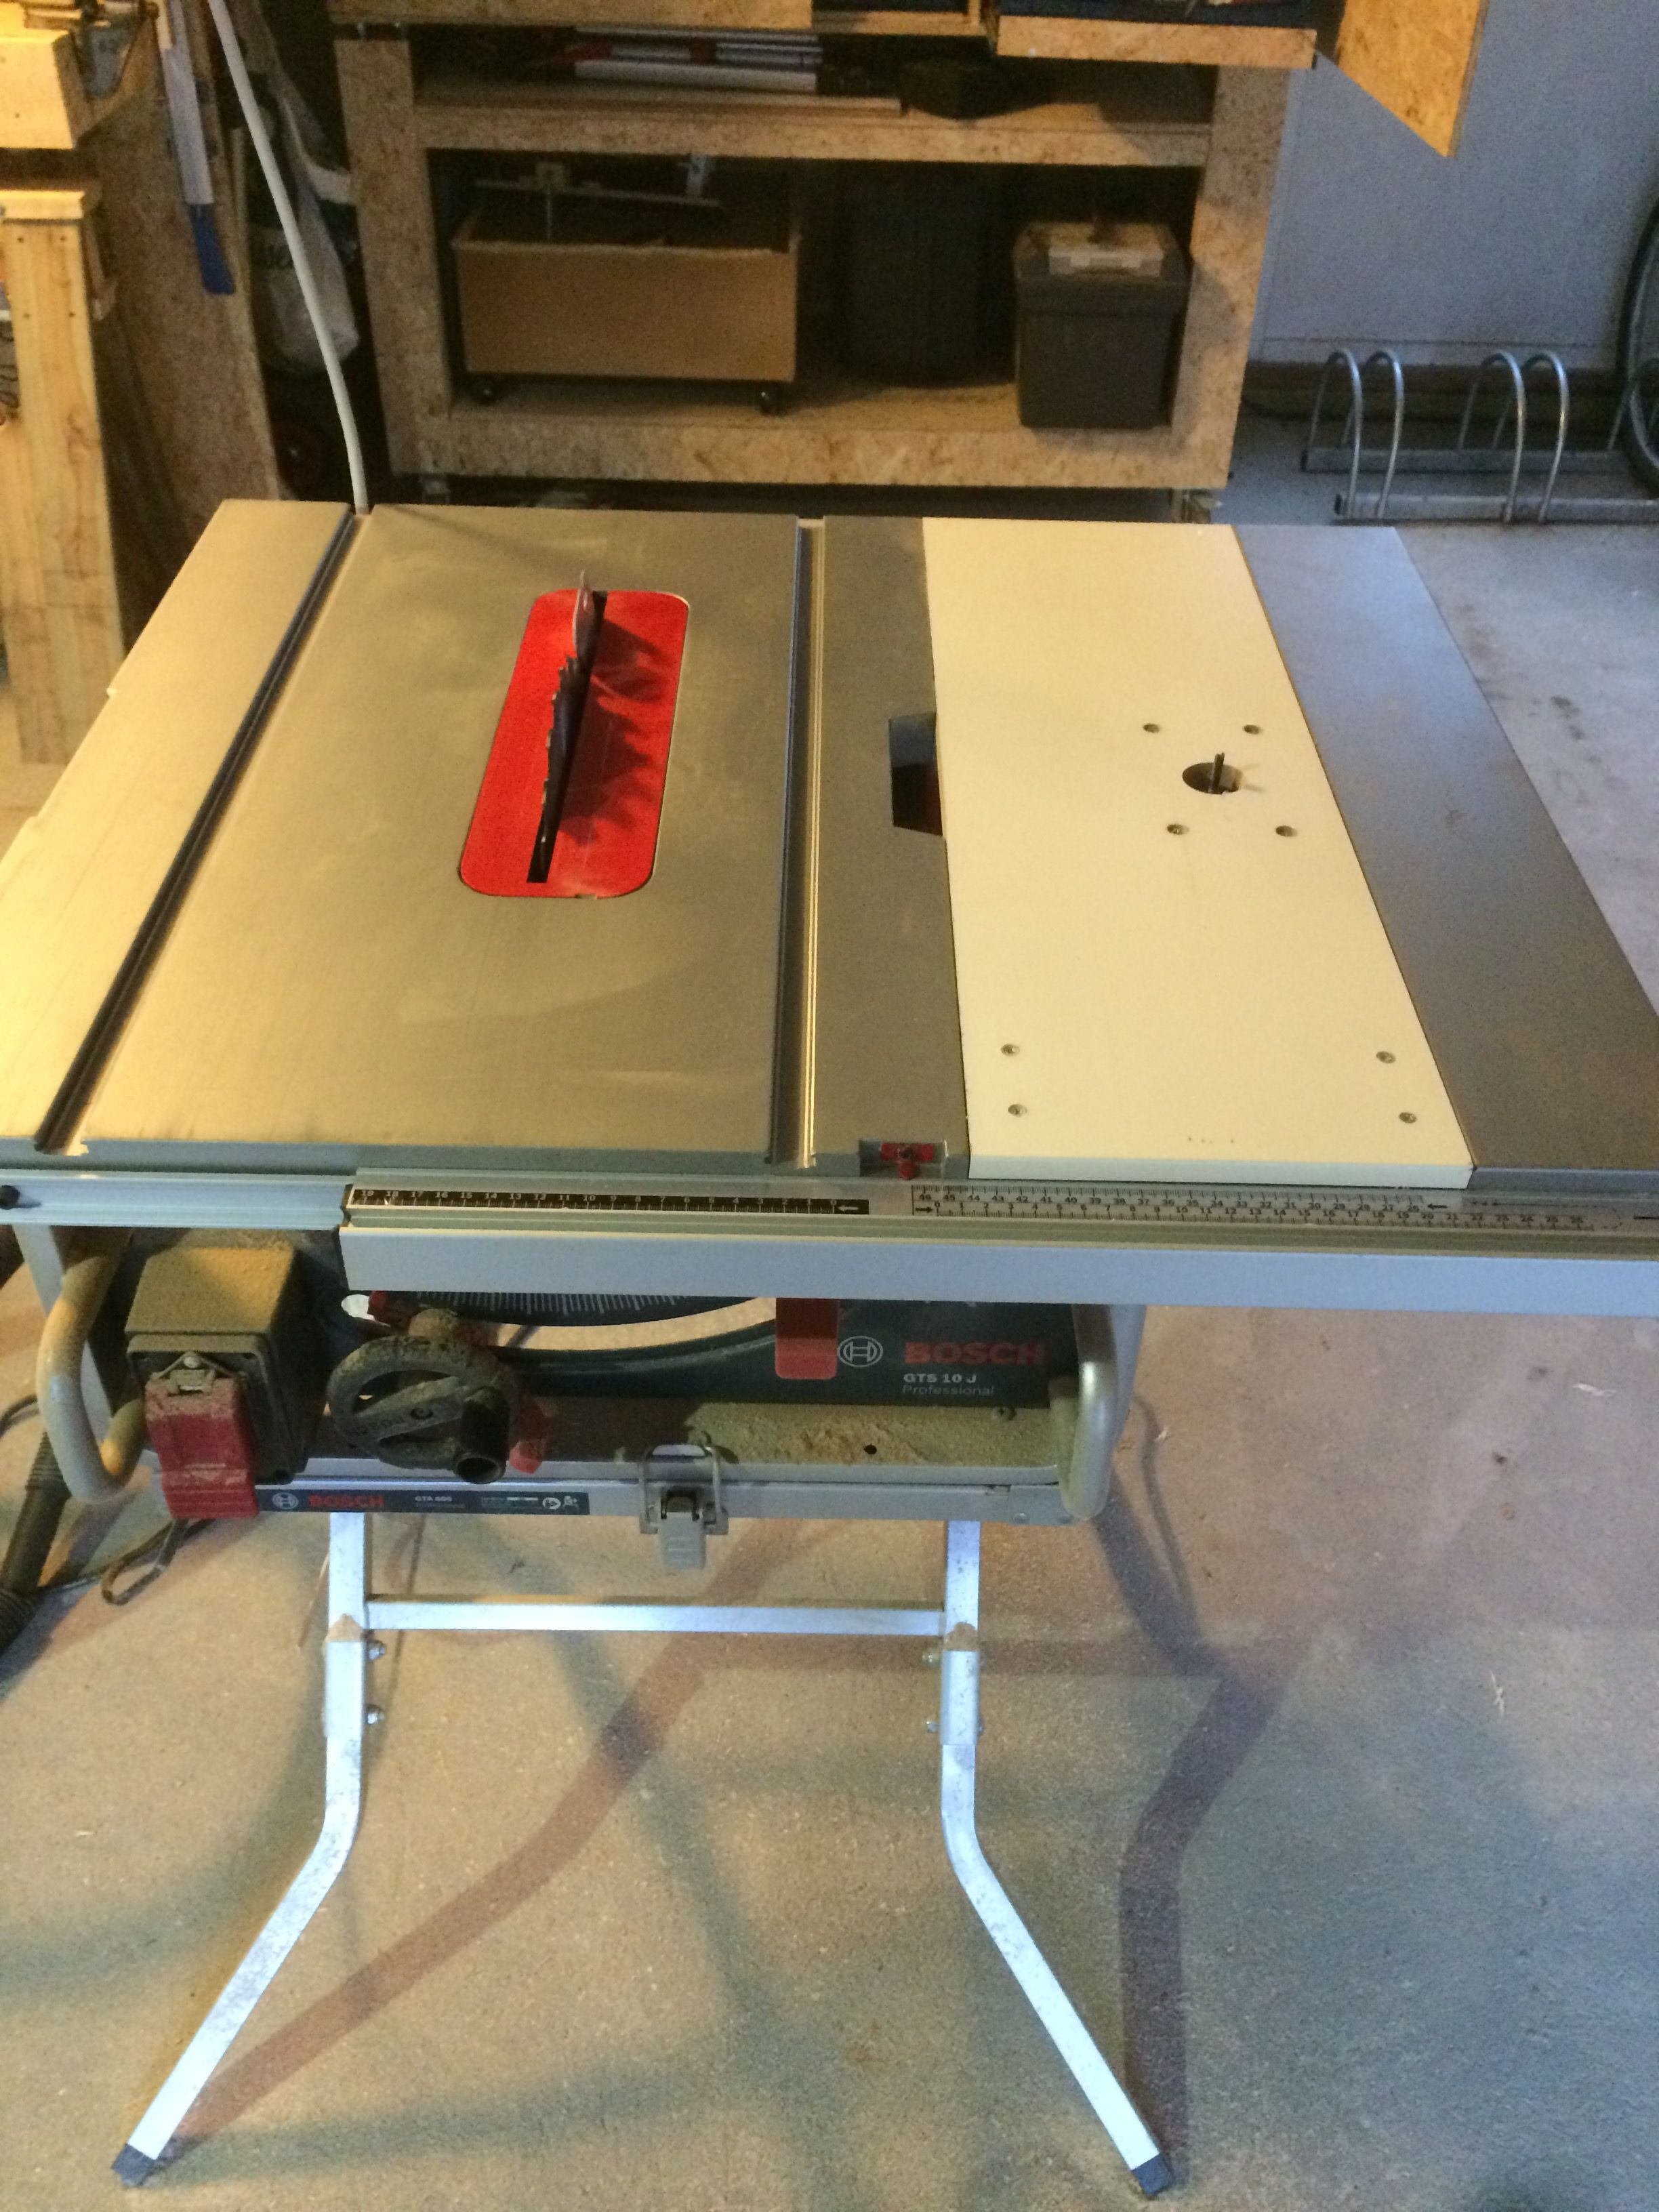 Router insert in bosch table saw table saw pinterest router insert in bosch table saw greentooth Image collections